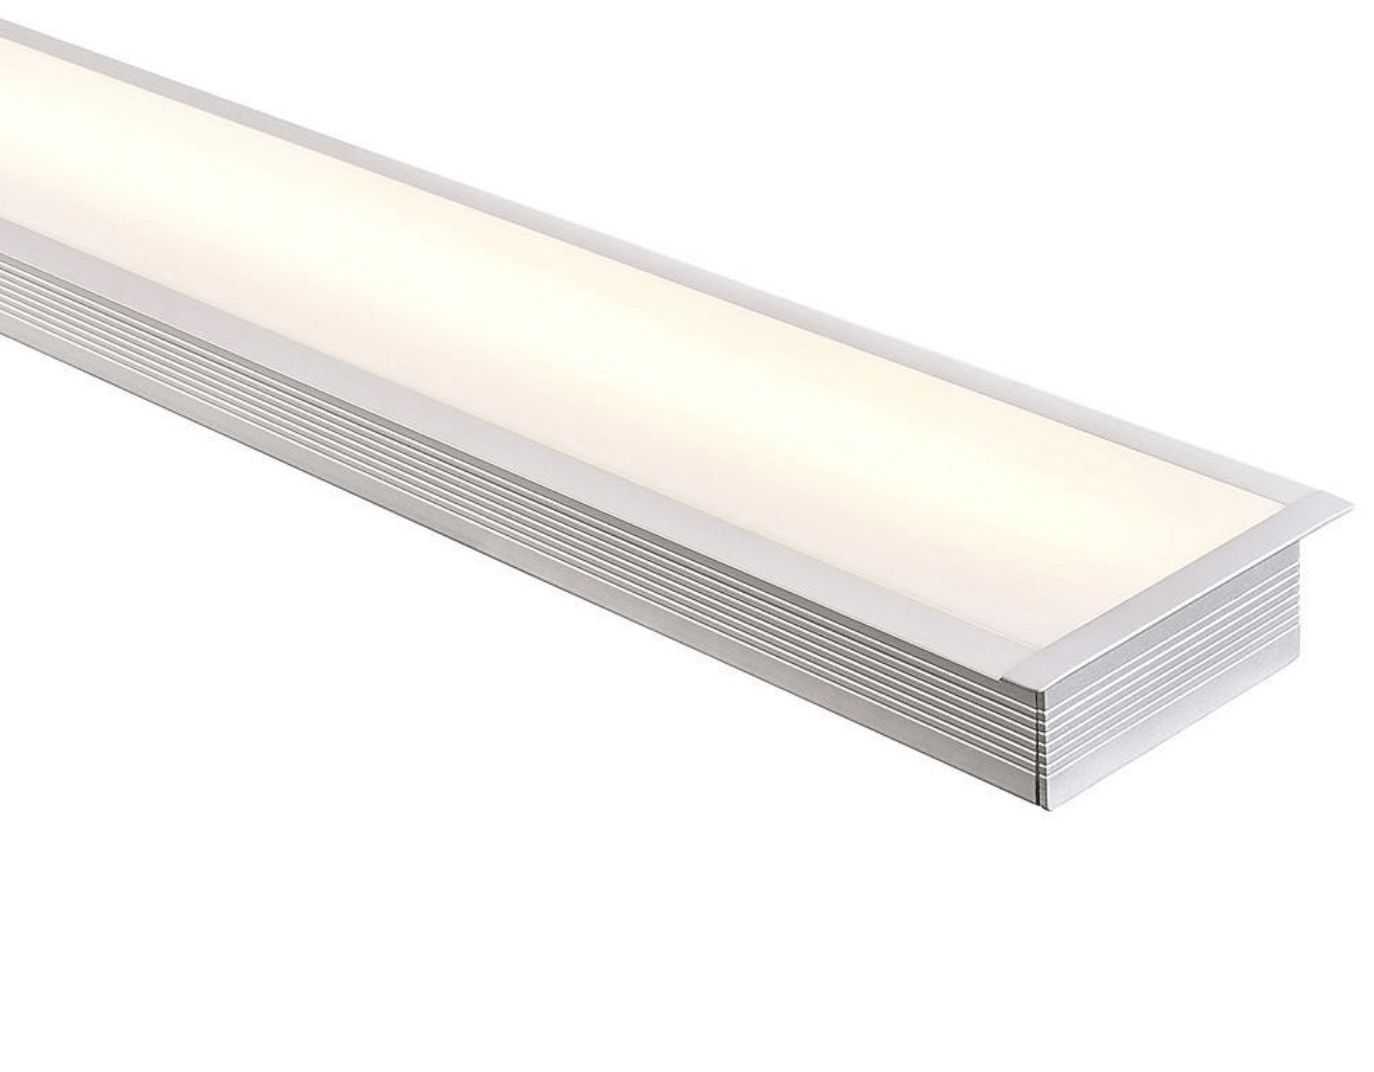 Profiles Recessed Profile - Large Deep Square Winged - HV9695-9835